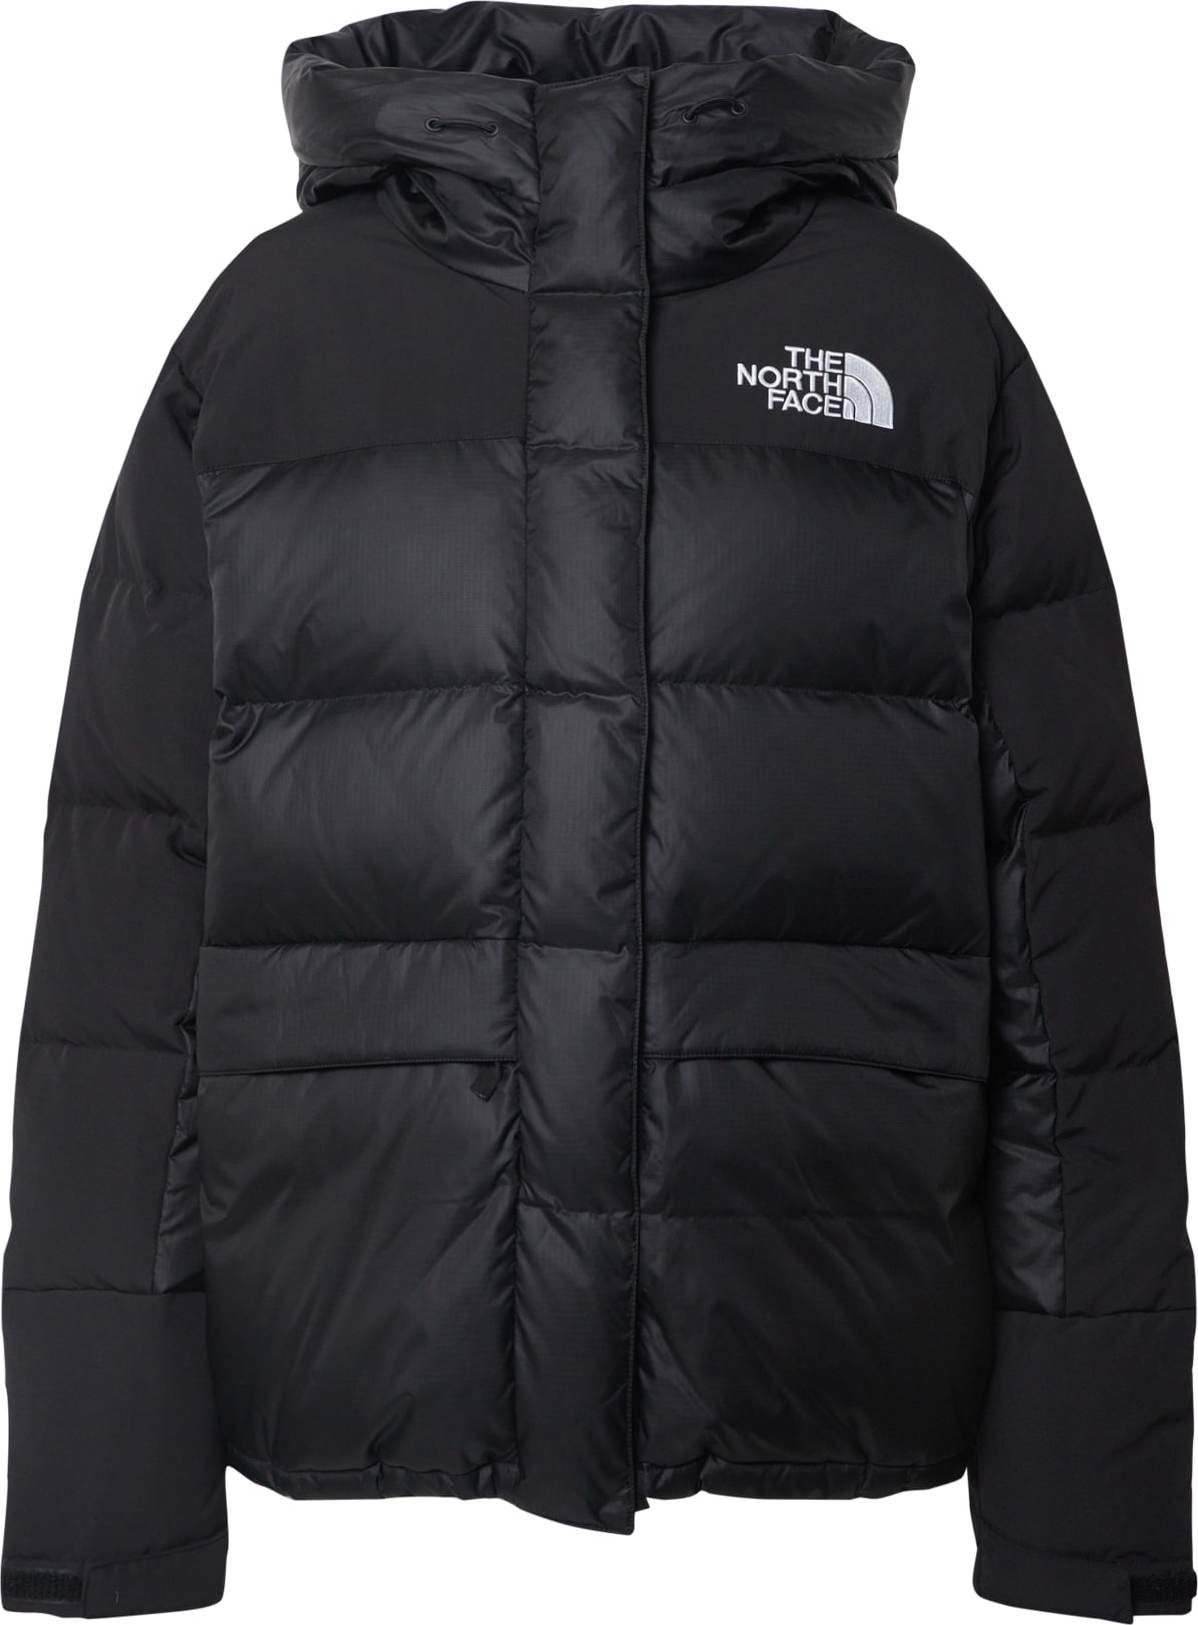 THE NORTH FACE Outdoorová bunda HMLYN DOWN PARKA černá The North Face